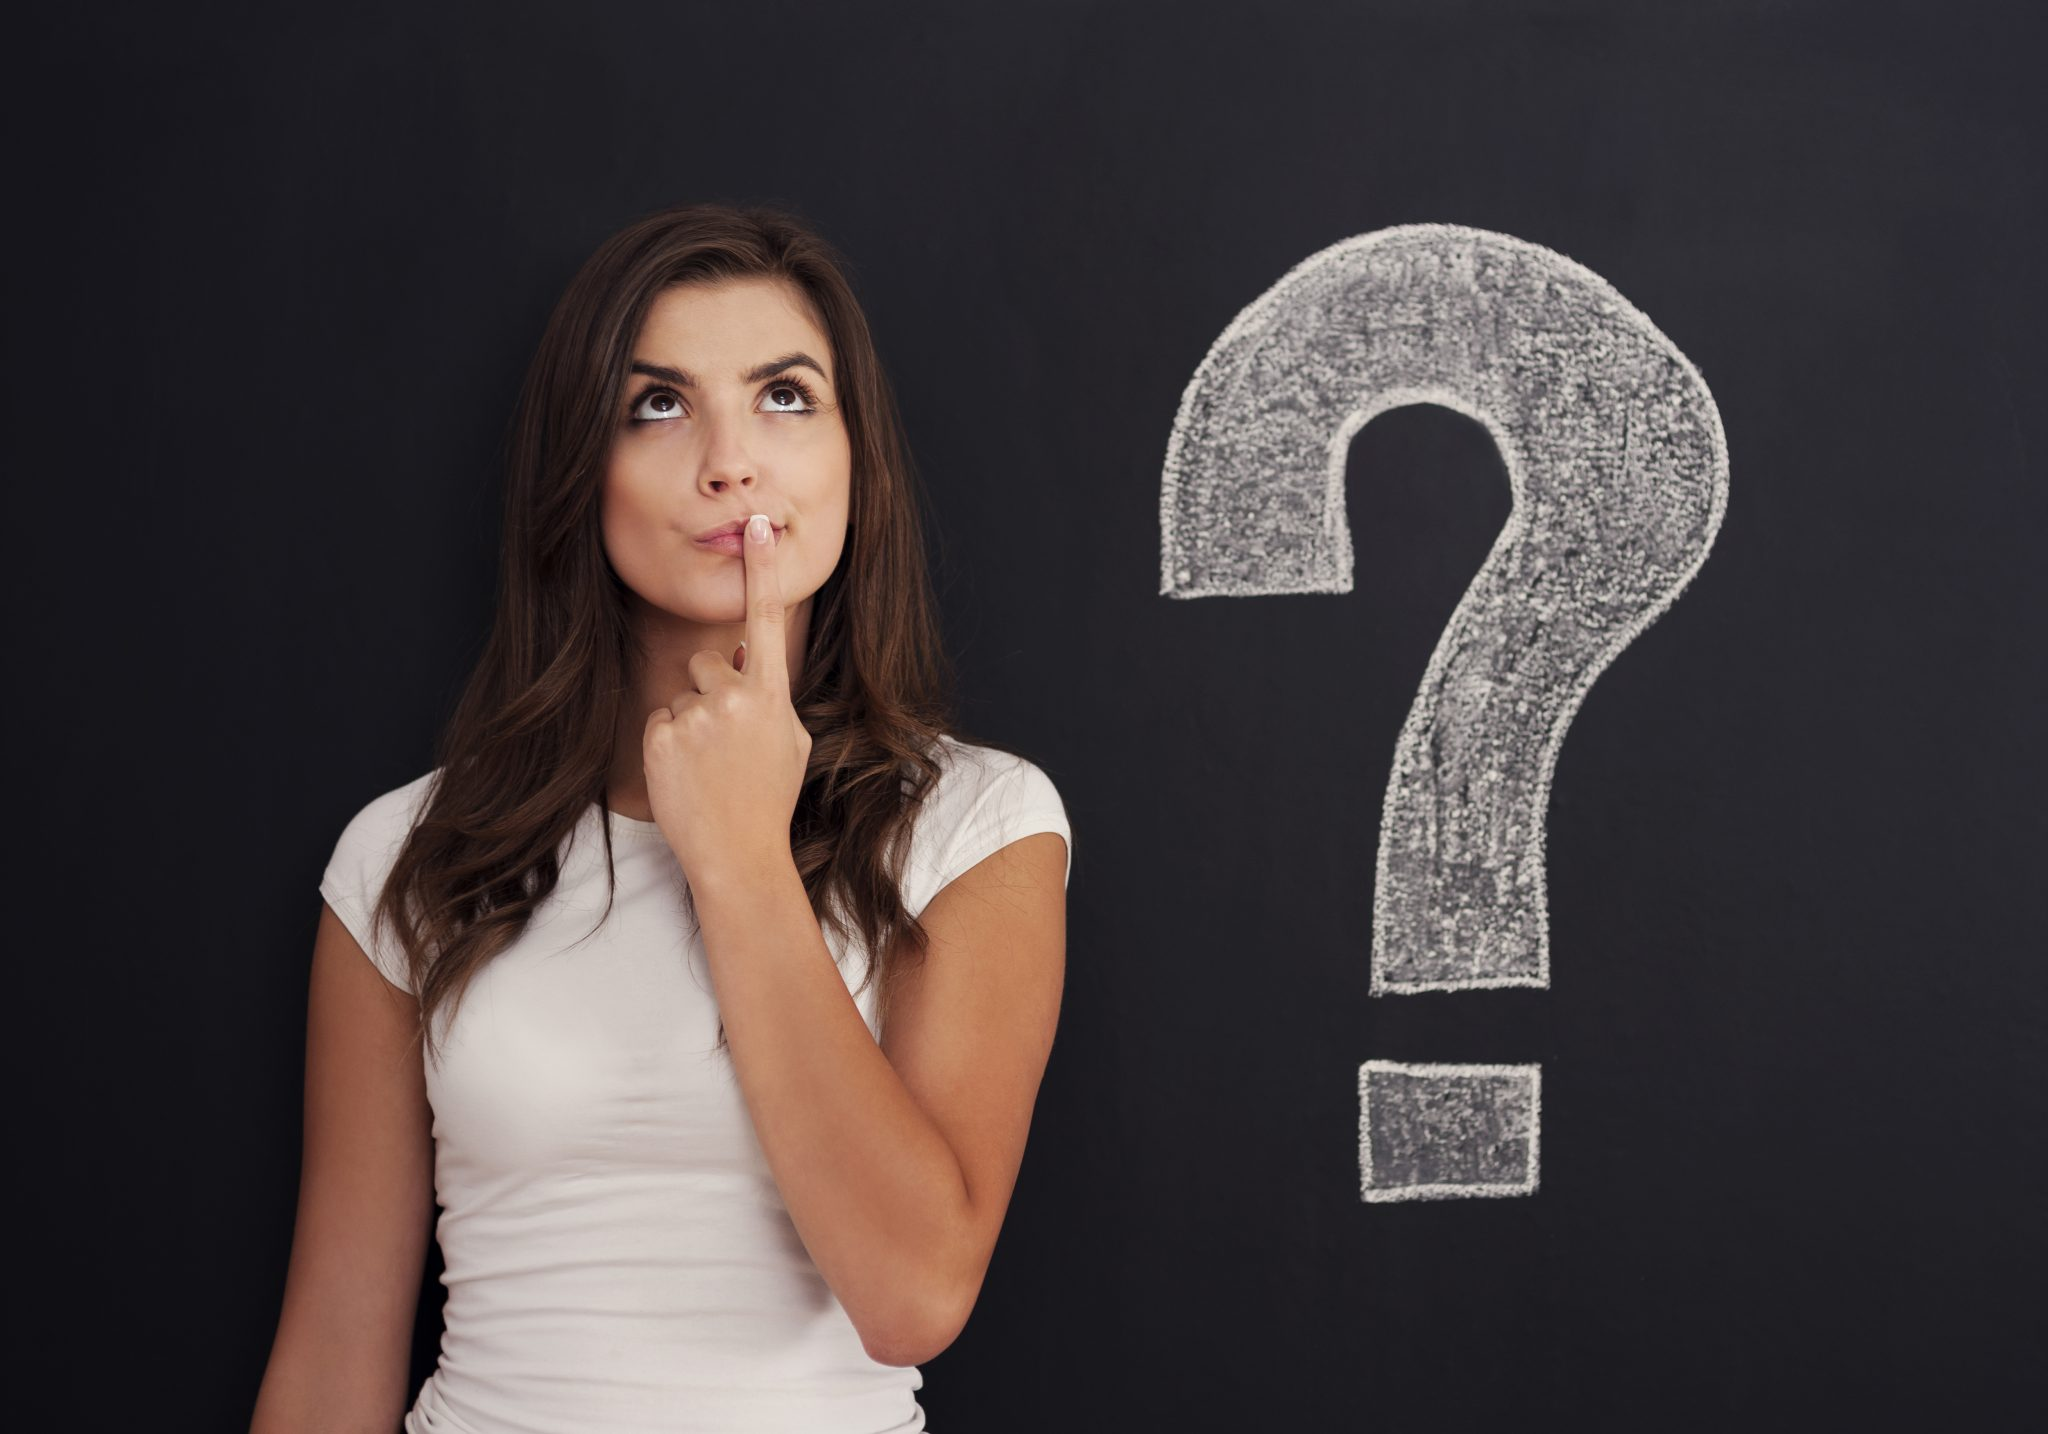 Got Questions About a Debt Consolidation Mortgage | Brampton Mortgage Broker - Rumy Gill Can Help